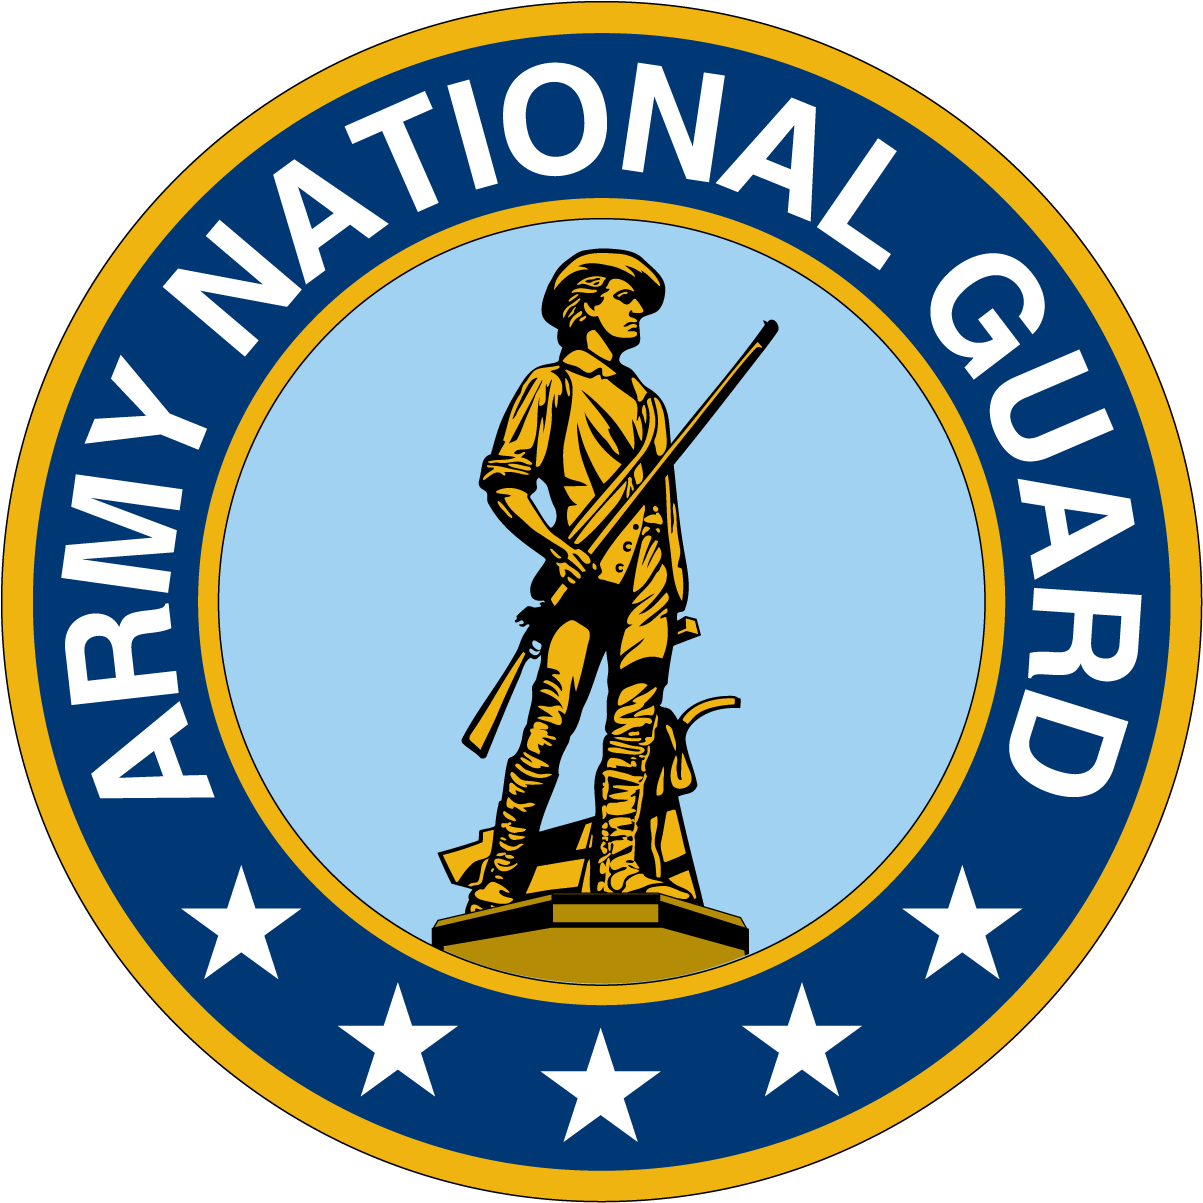 file army national guard logo png wikimedia commons rh commons wikimedia org army reserve logo pictures pakistan army logos pictures